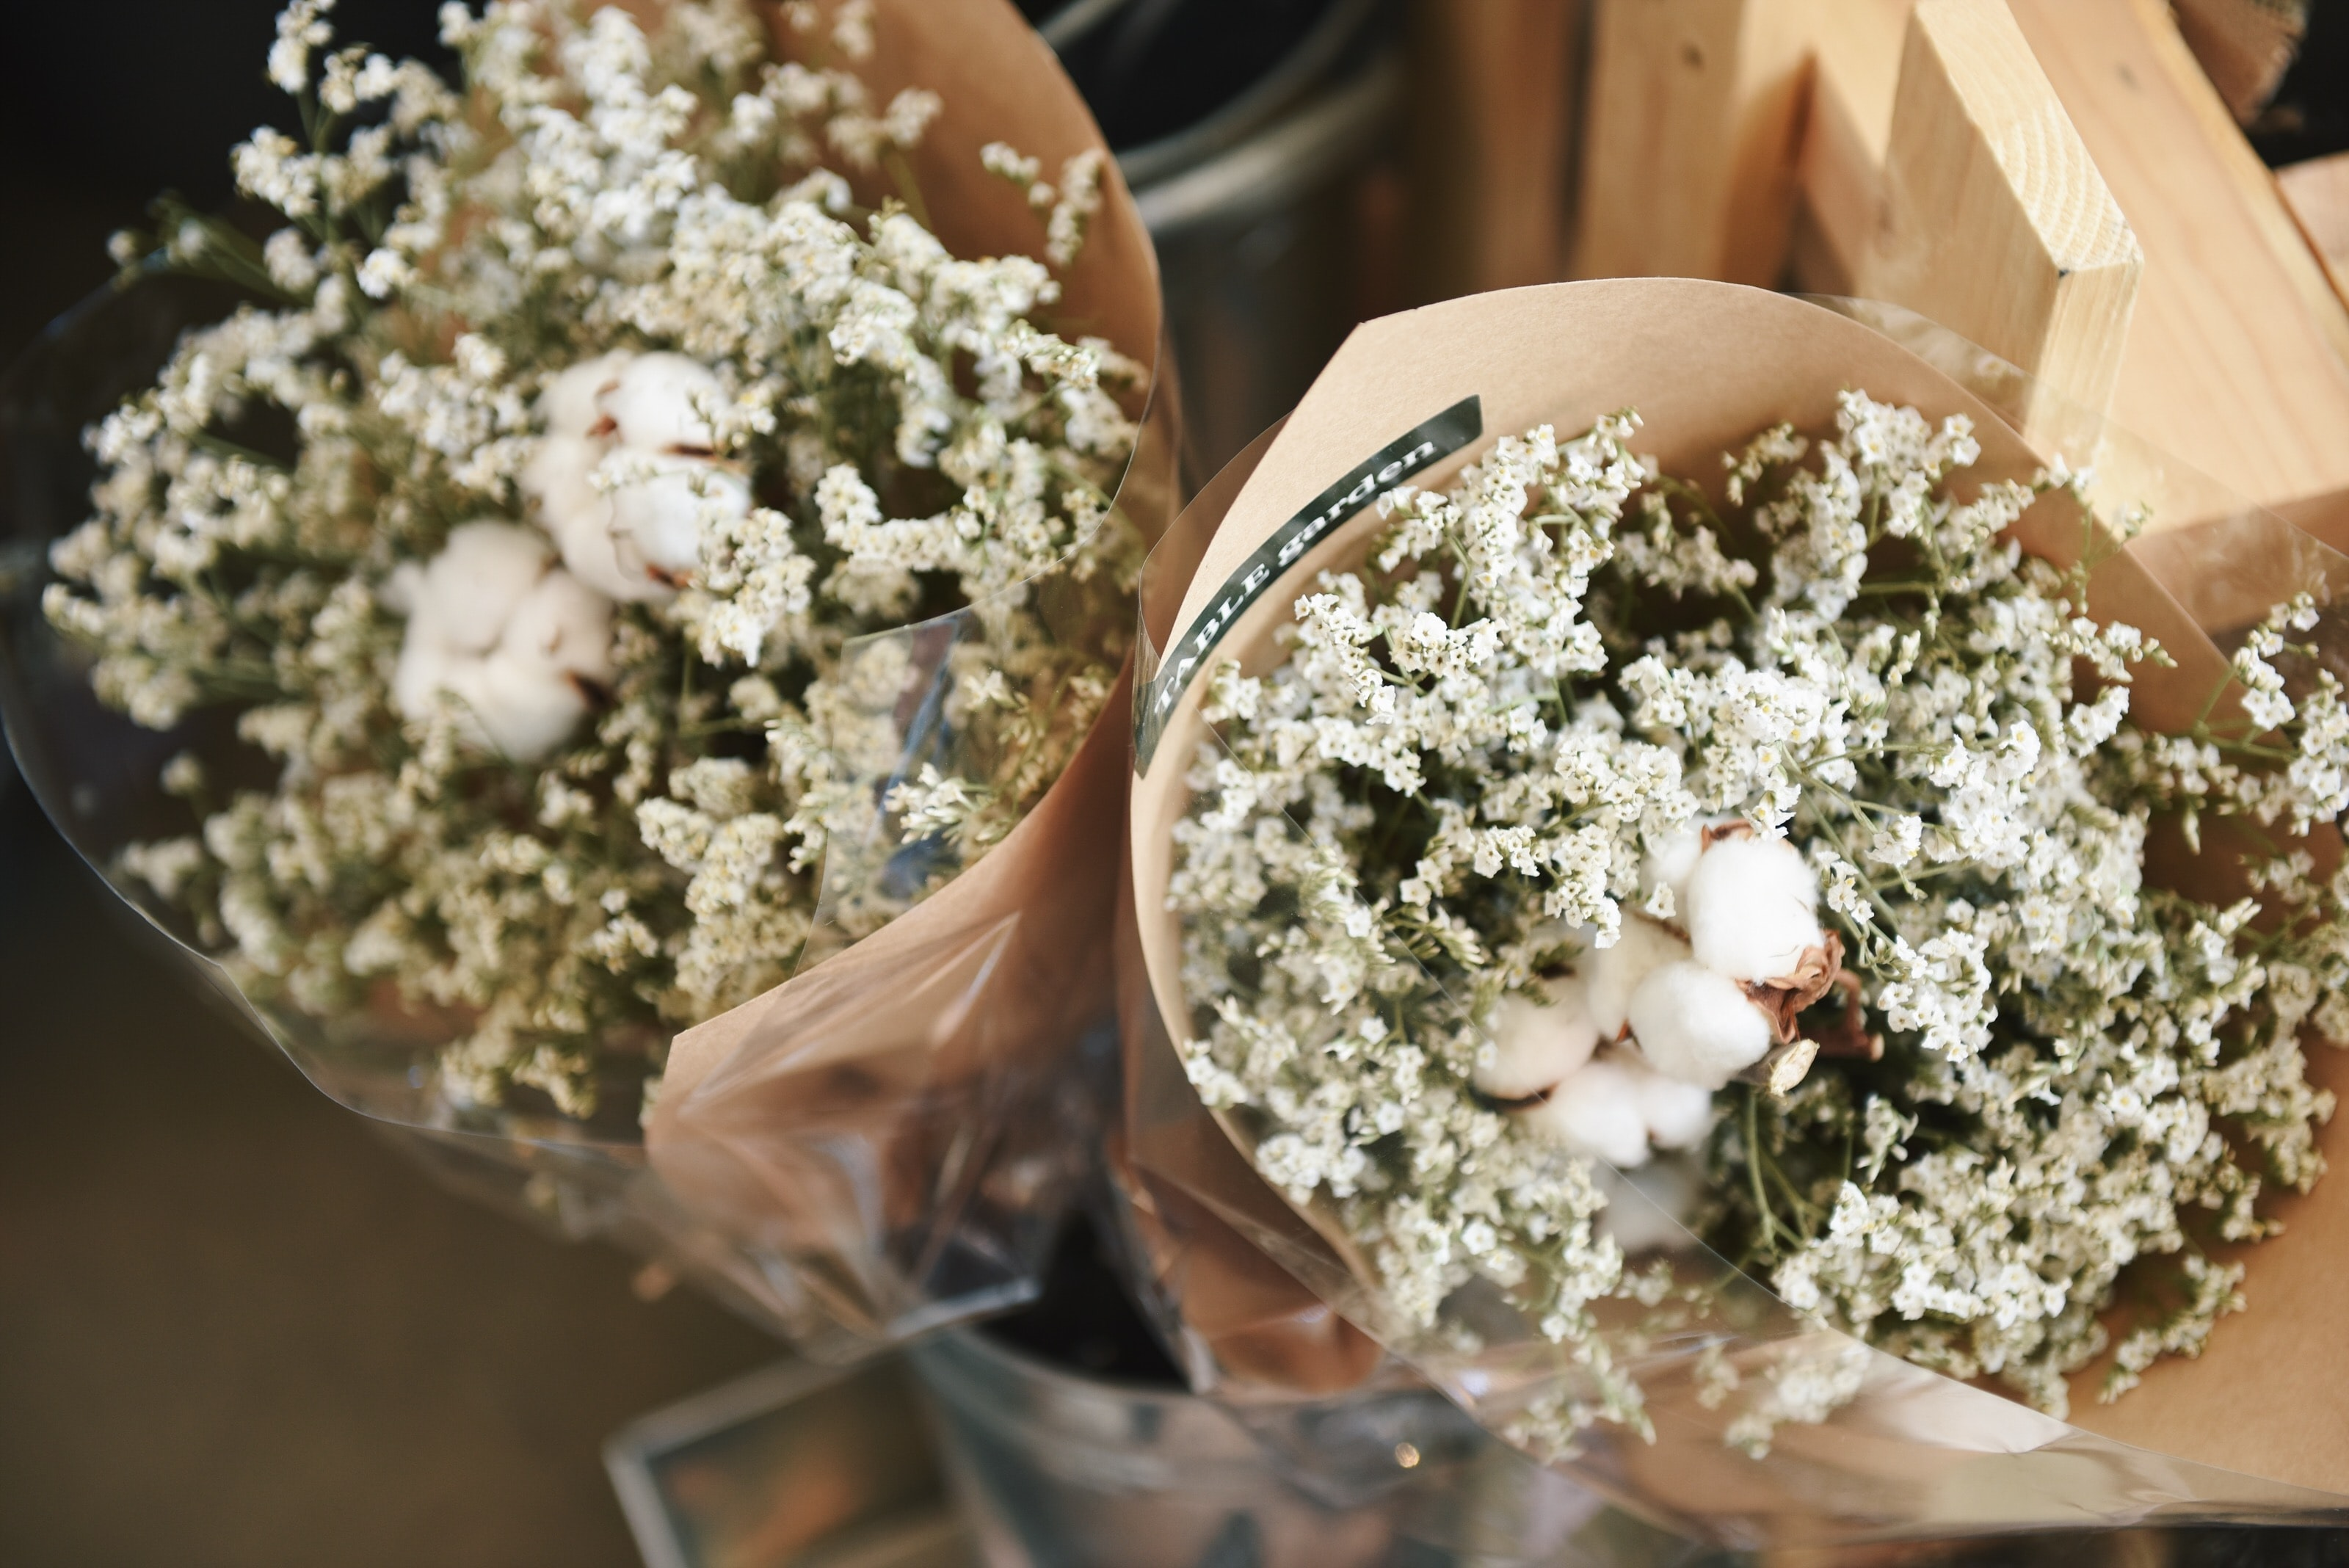 Two large bouquets of baby's-breath flowers with cotton flowers in the middle wrapped in foil and paper